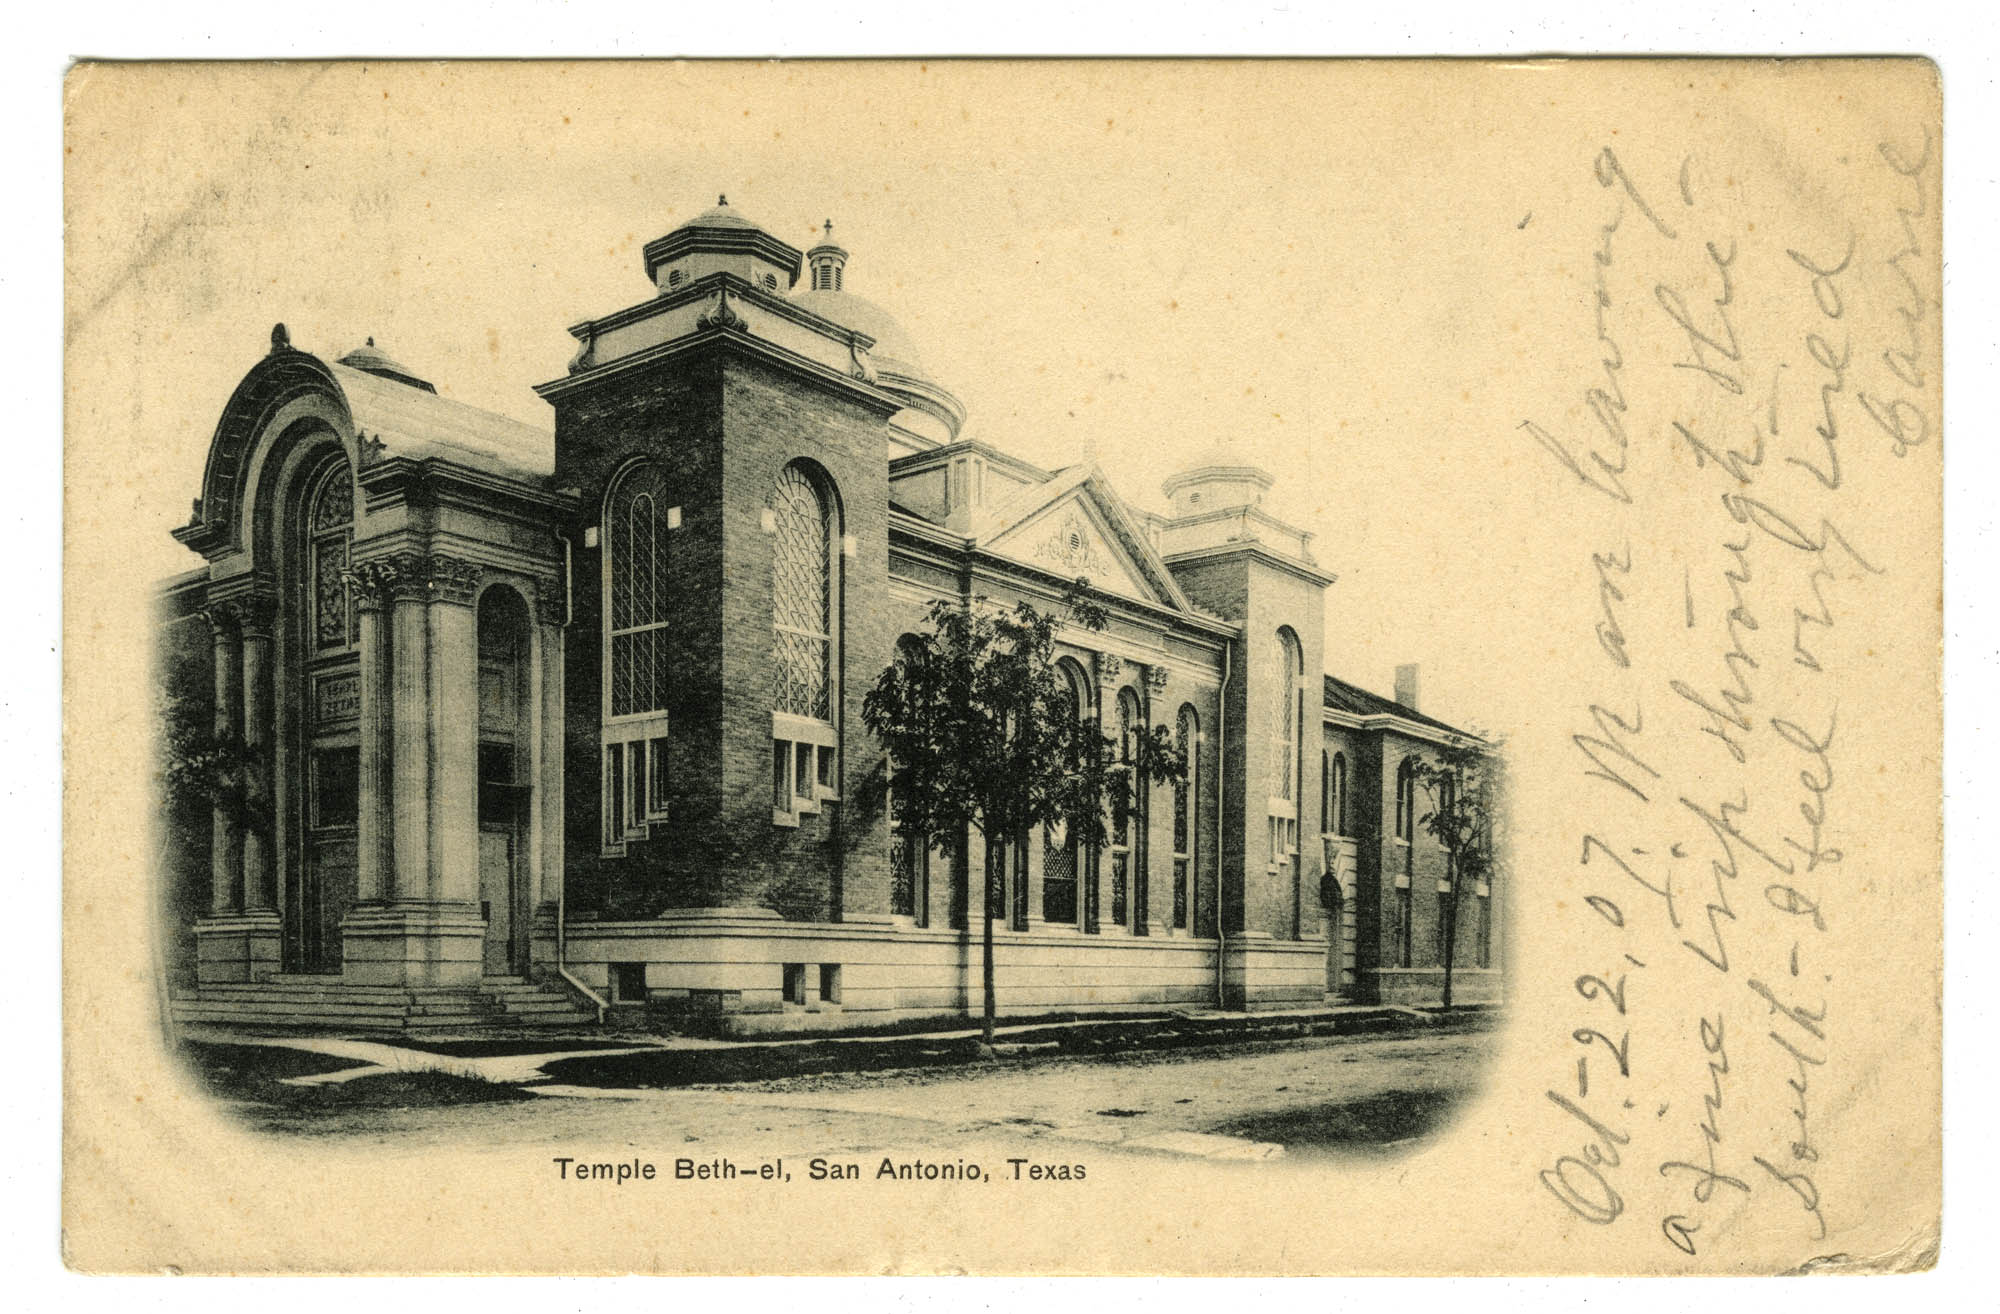 Temple Beth-el, San Antonio, Texas